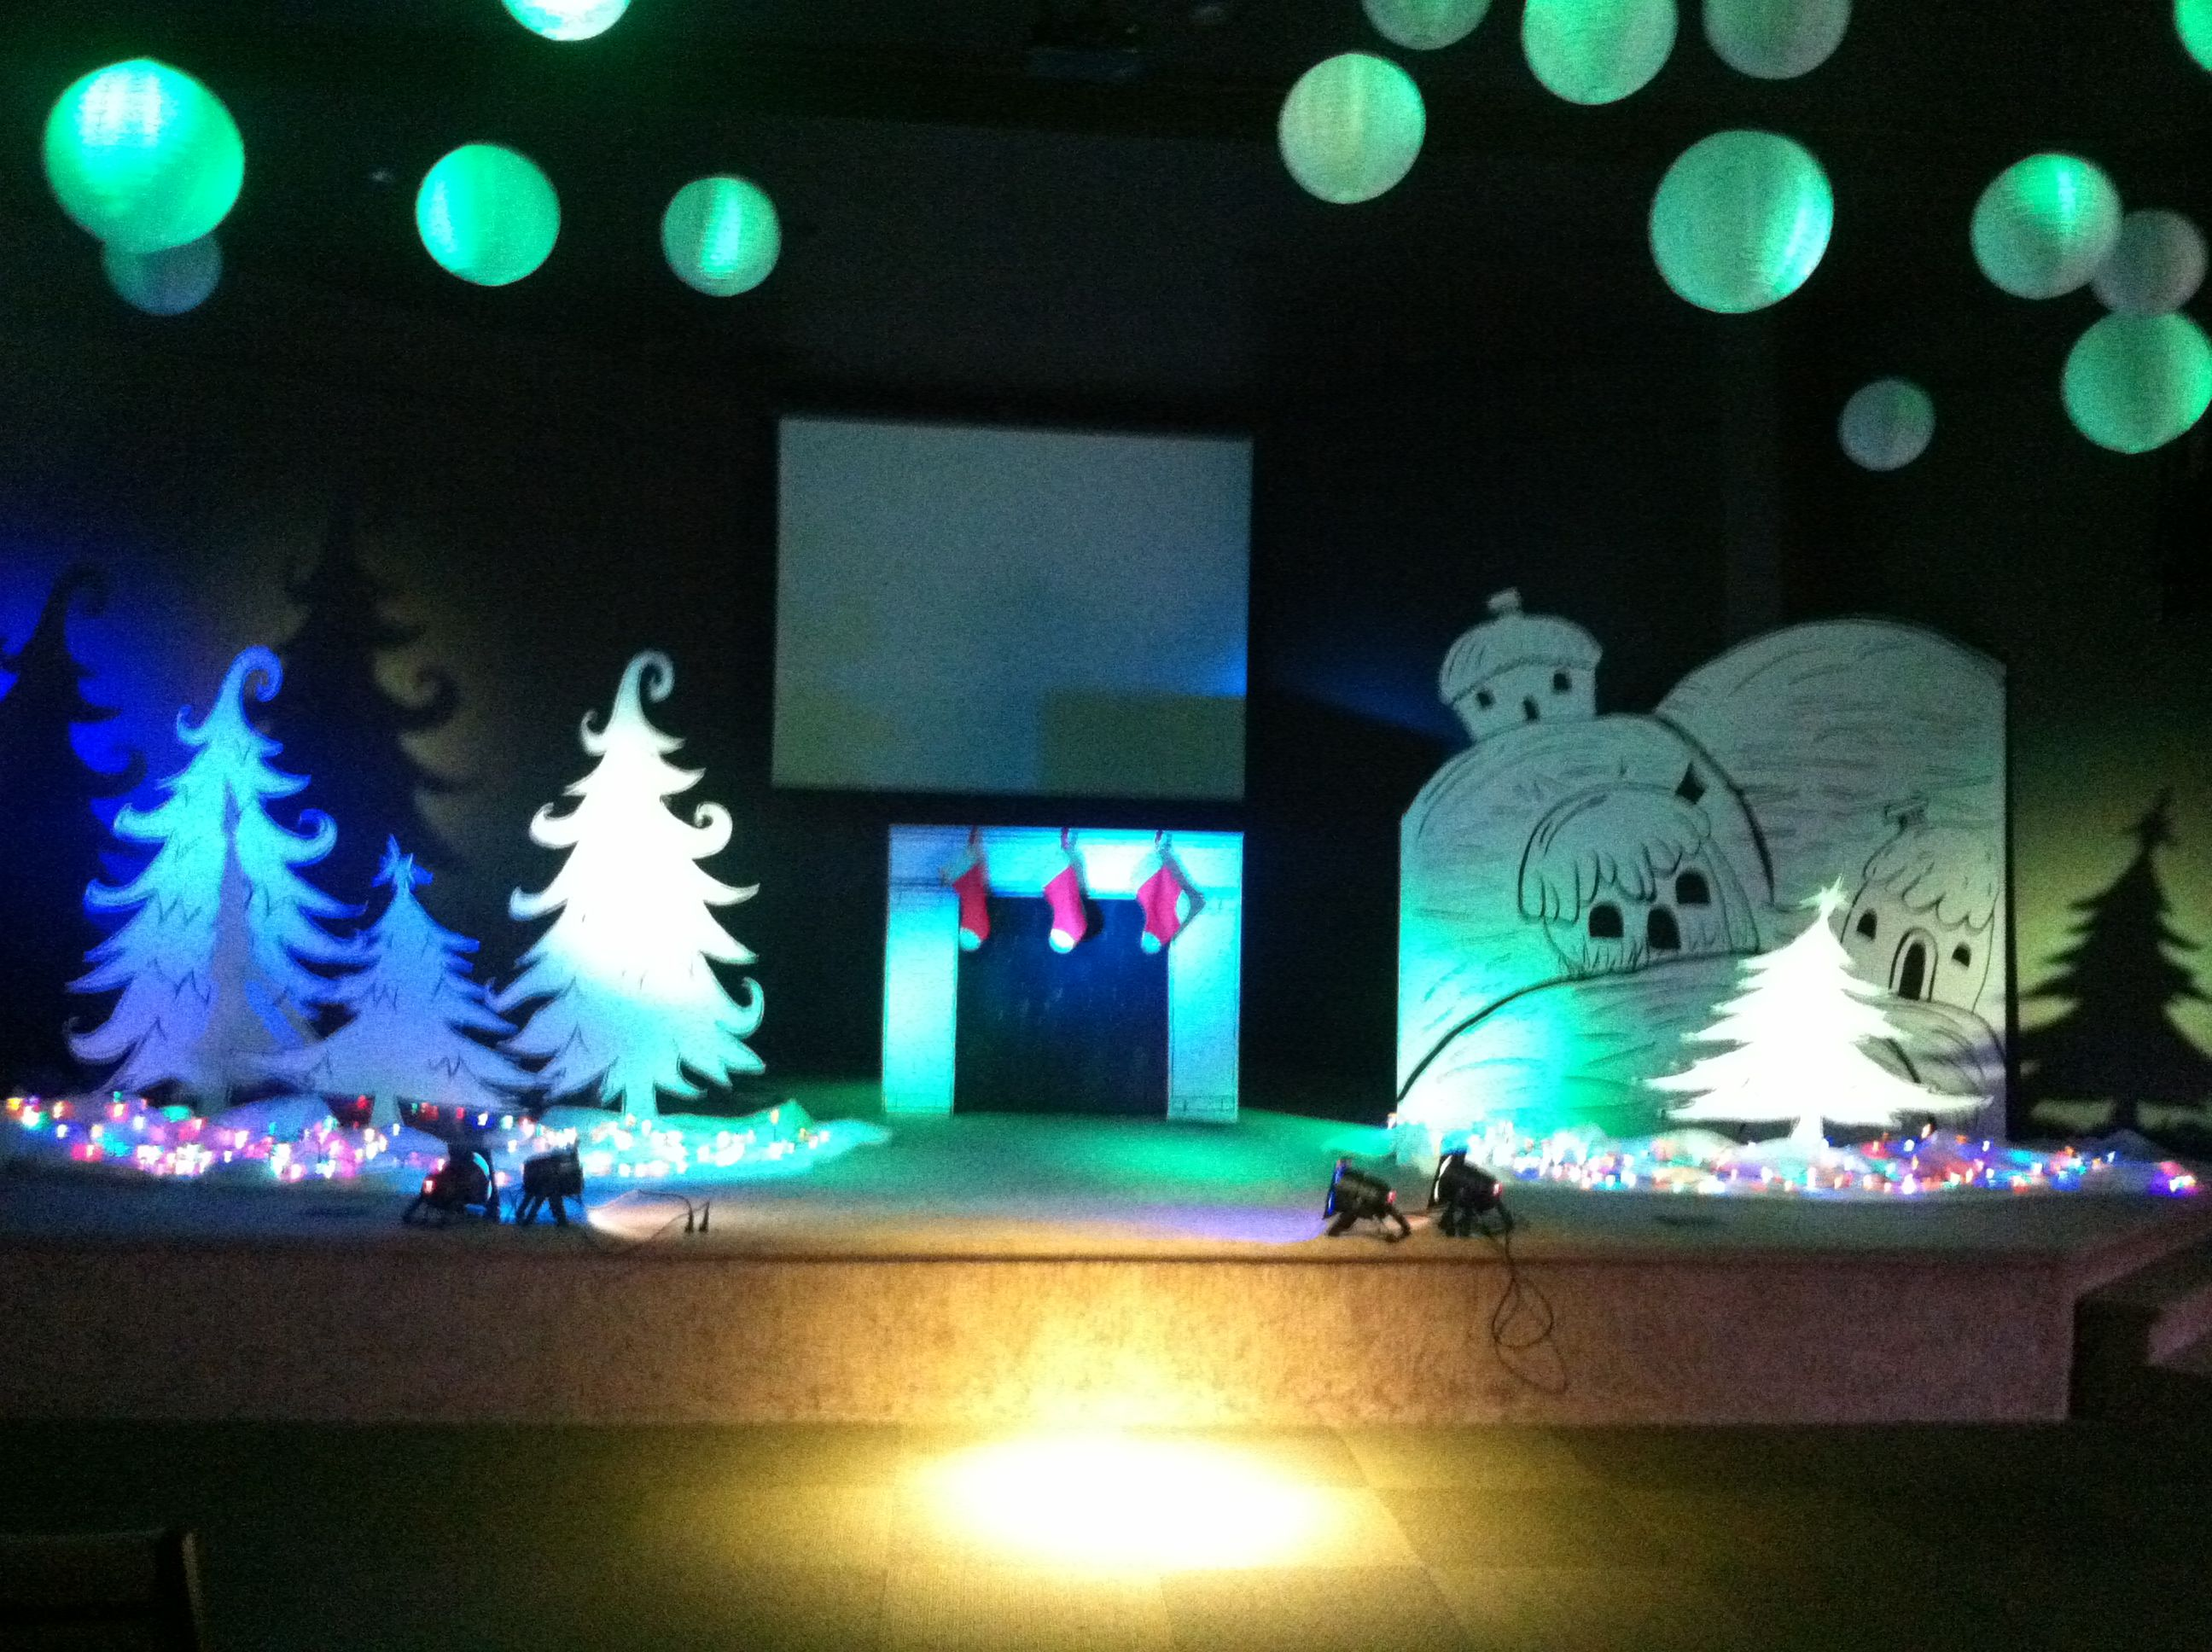 The Christmas Trees Are Simple Yet Very Pretty Stage